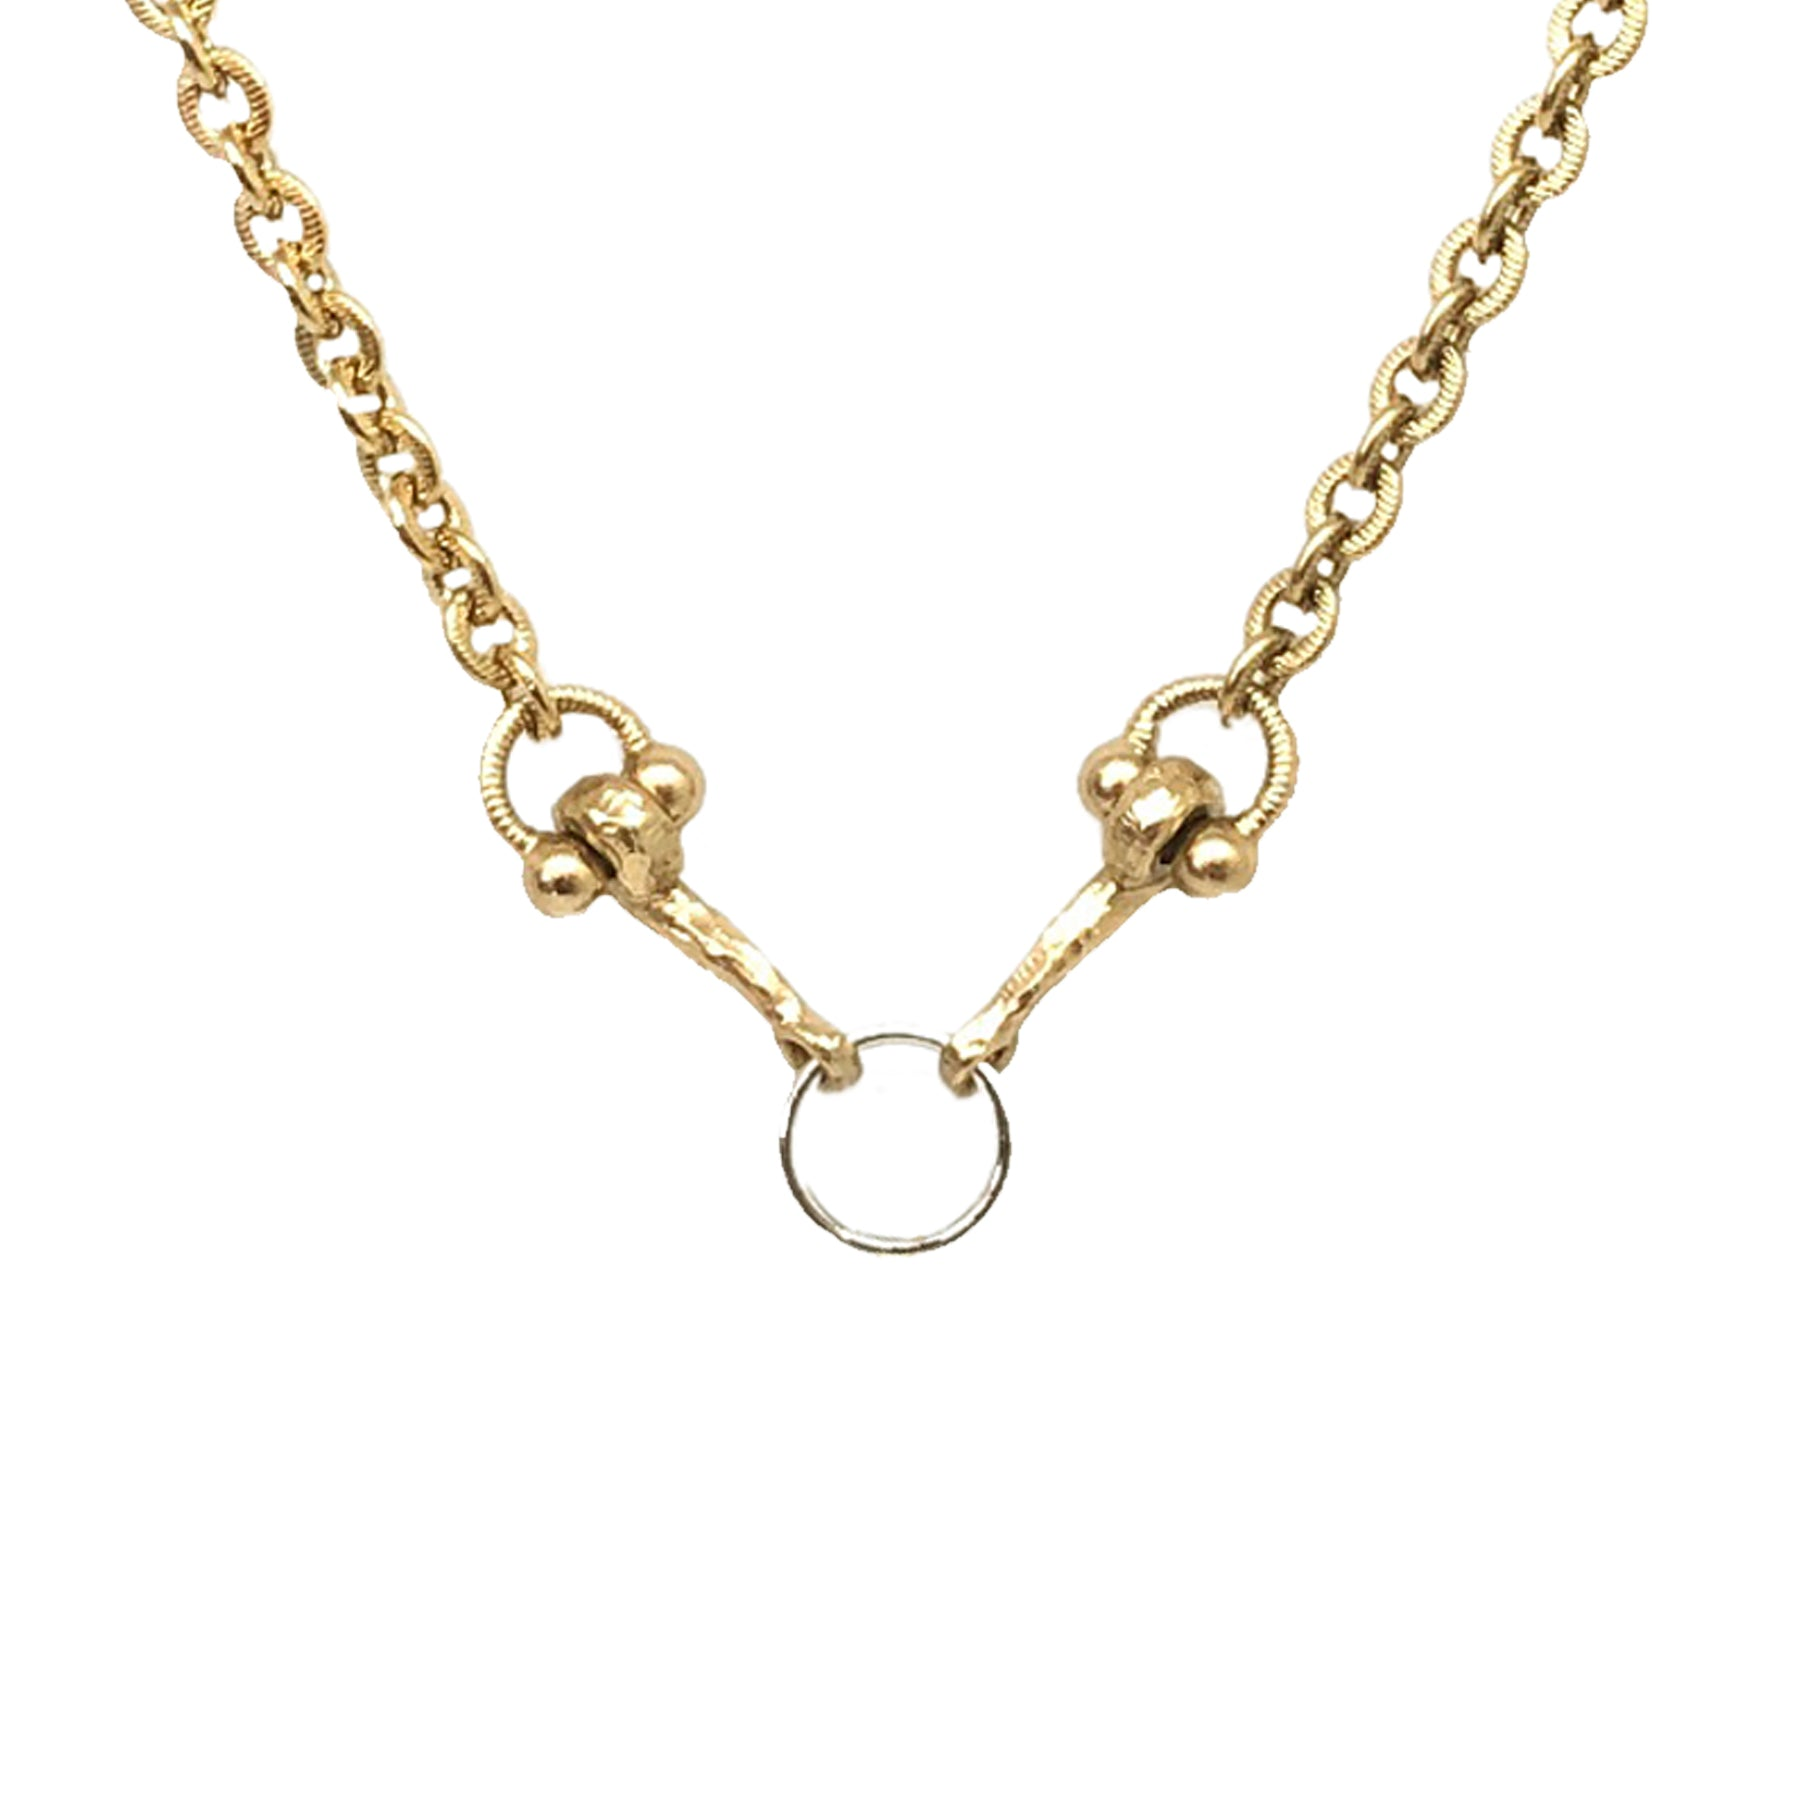 MINI GOLD HORSEBIT & RING NECKLACE